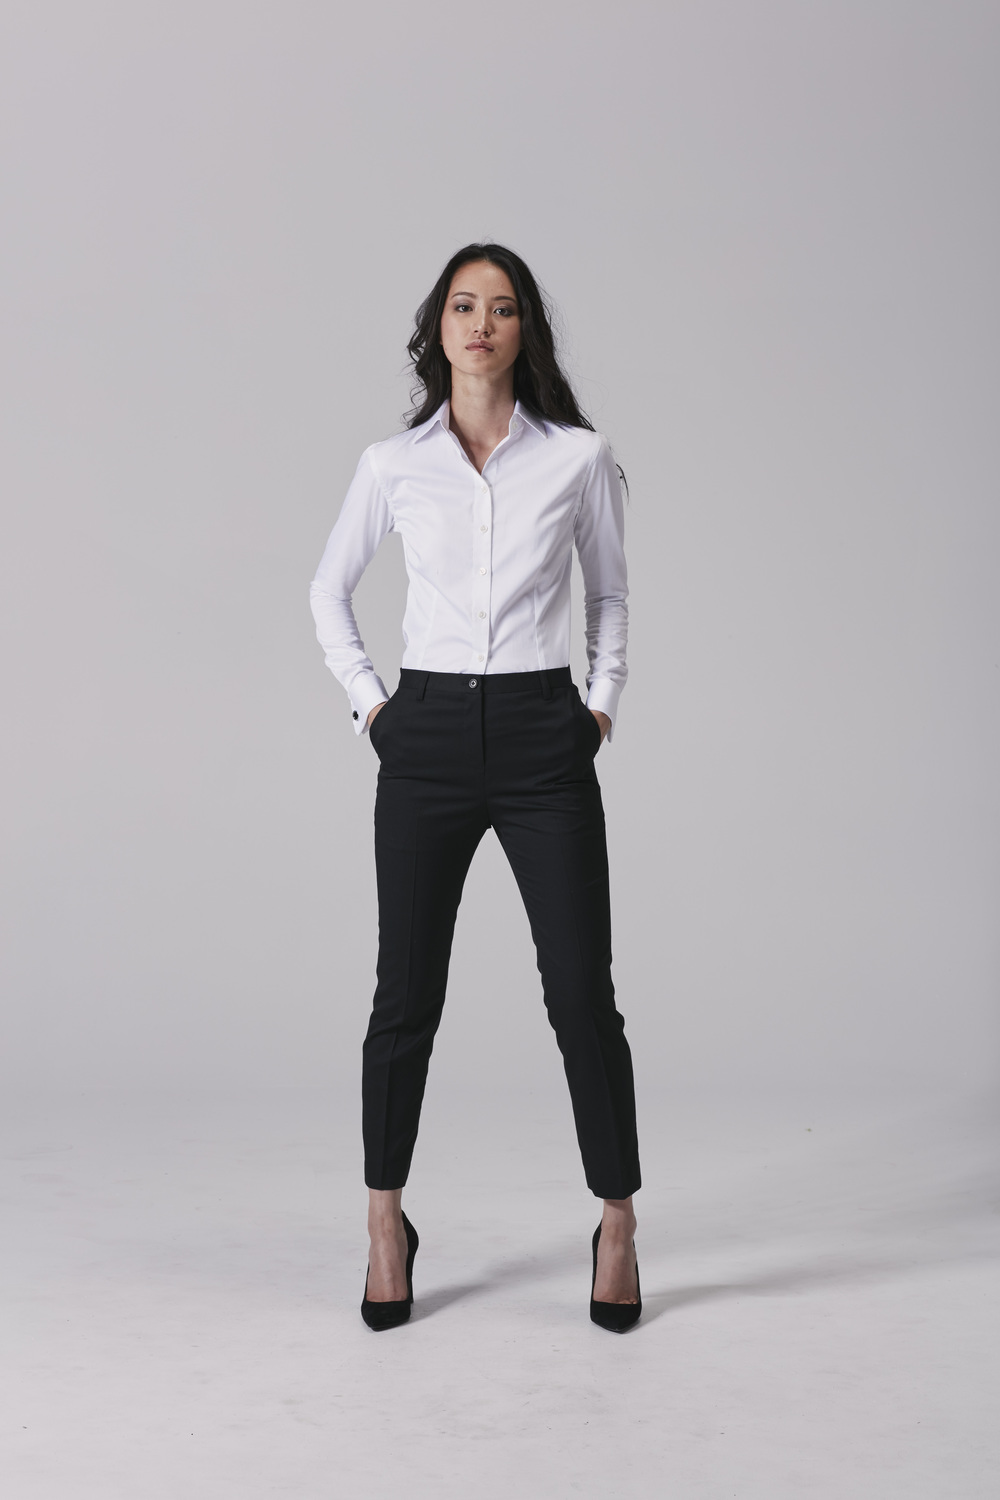 Womens tuxedo shirt Womens office pants.jpg